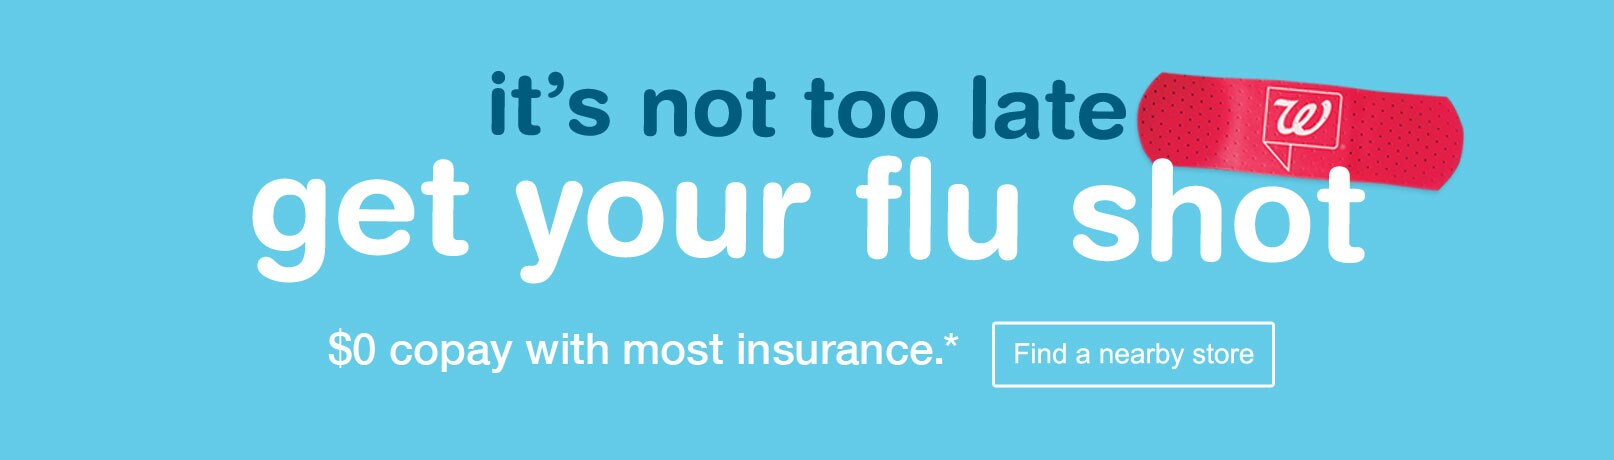 It's not too late. Get your flu shot $0 copay with most insurance. Find a nearby store.*